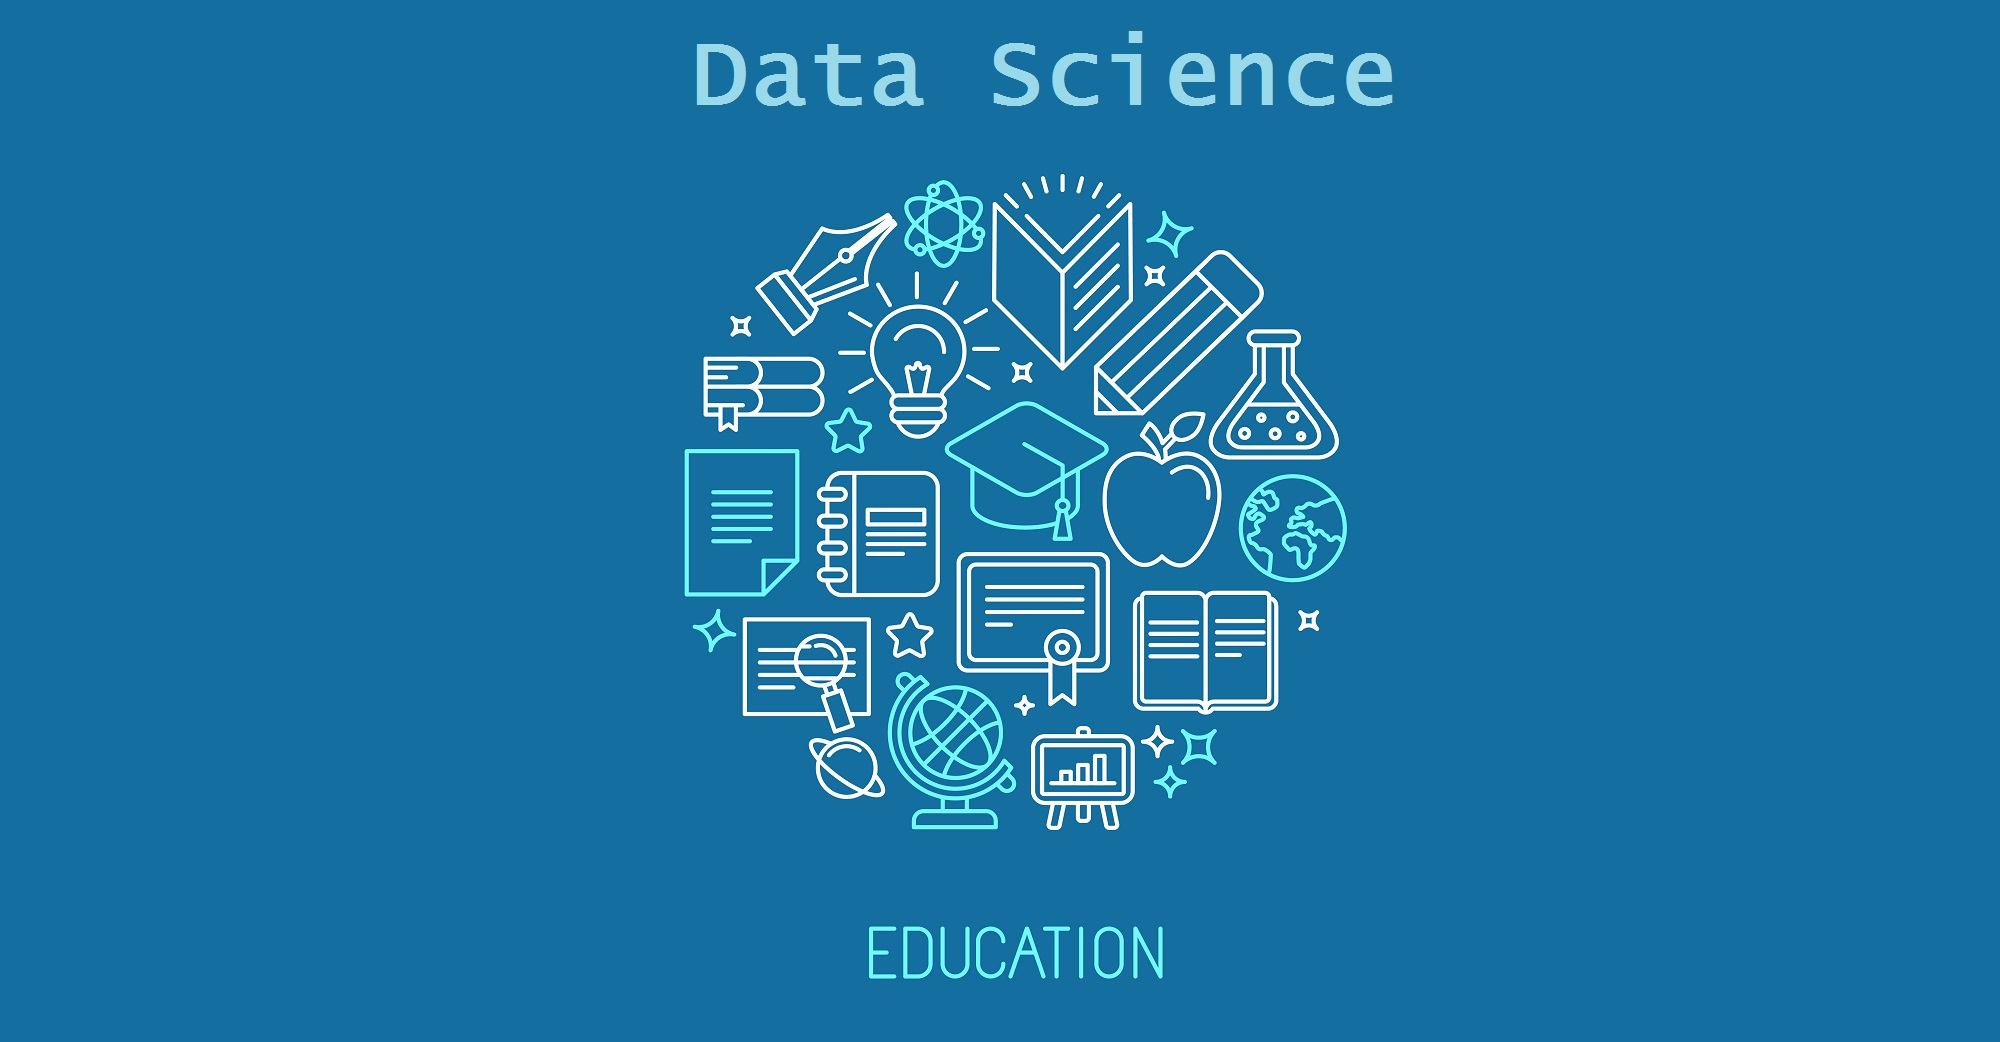 data science education mblock